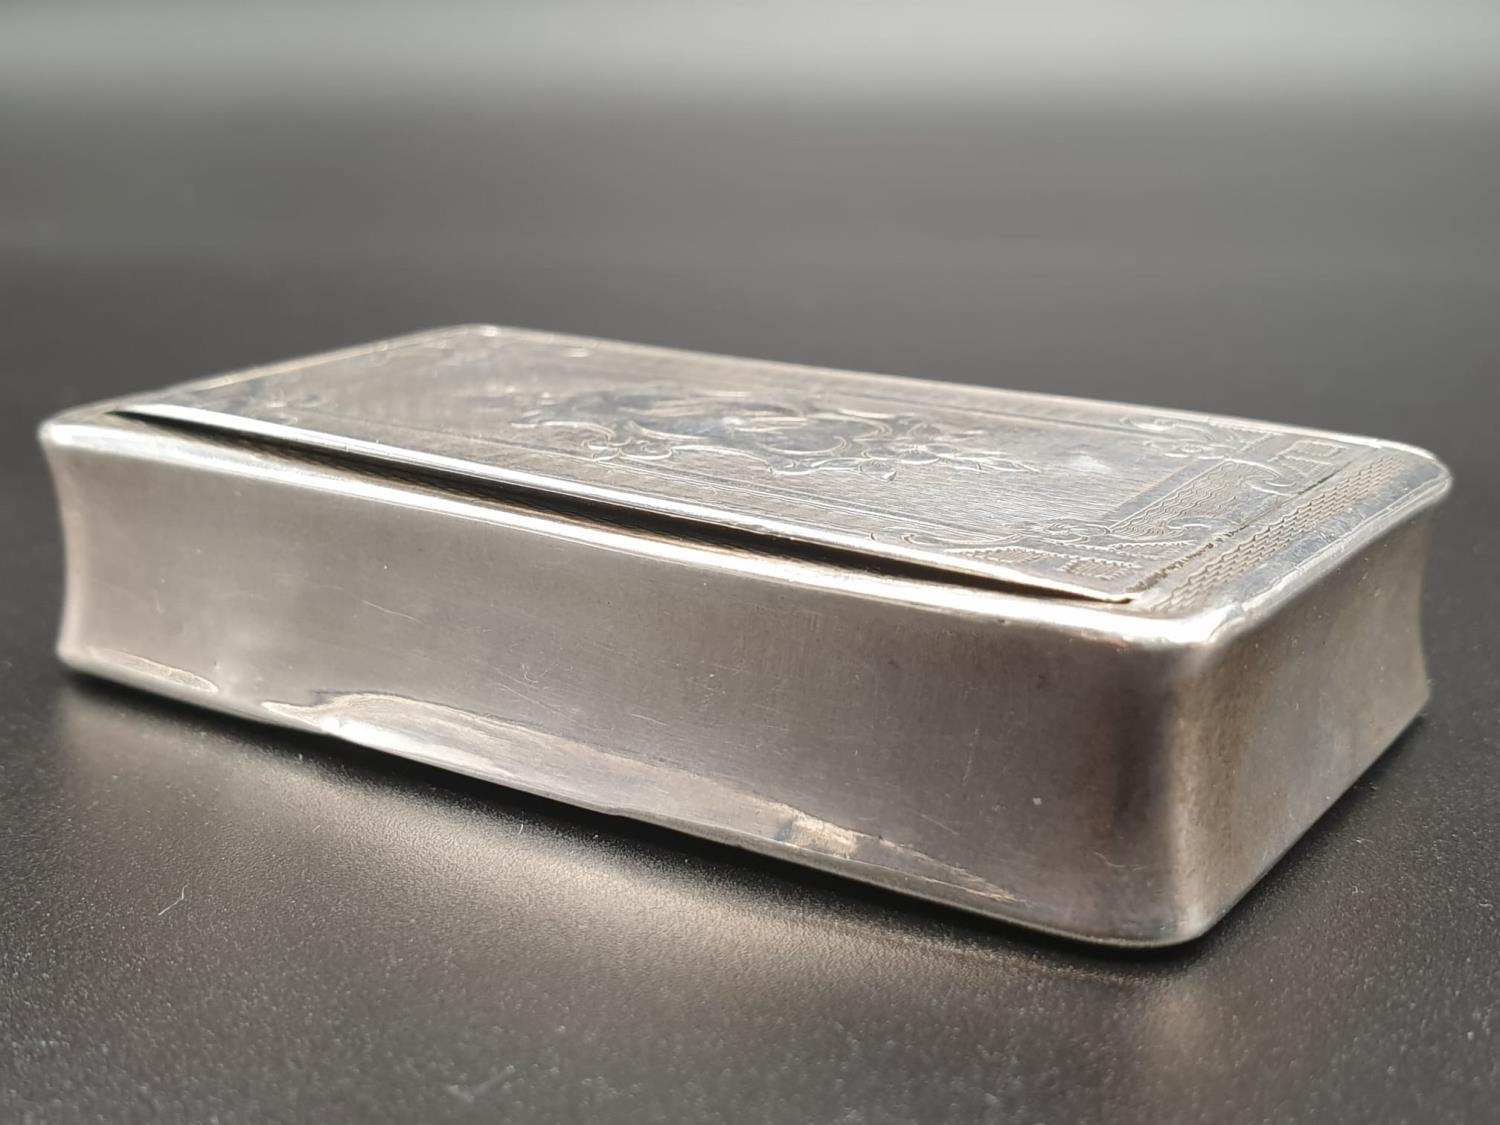 Antique French Gilt Solid Silver 1880s Snuff Box. 7.8cm x 4.5. 54.5g - Image 4 of 9